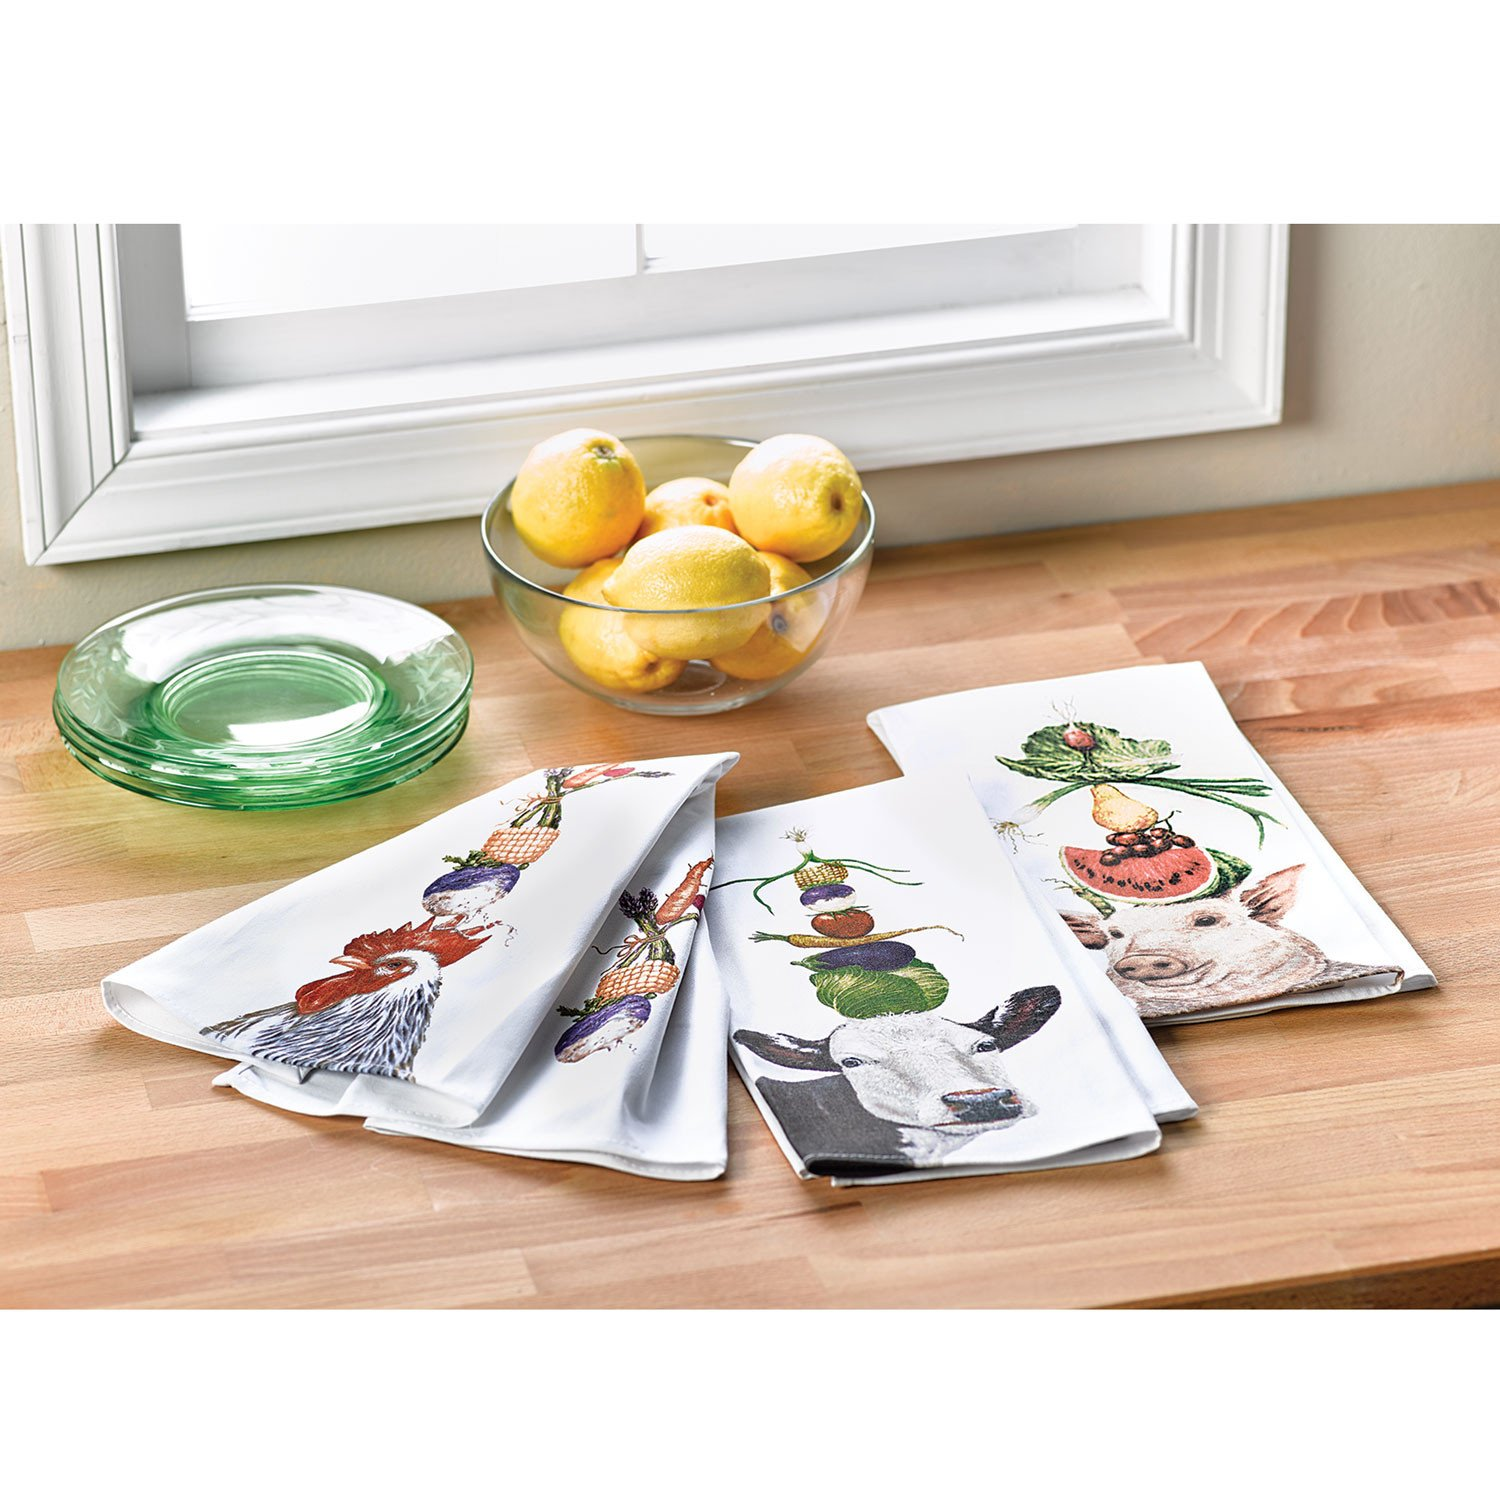 Paperproducts Design Farm Animal Kitchen Towel Set - 3 Pieces in 100% Cotton - by Vickie Sawyer